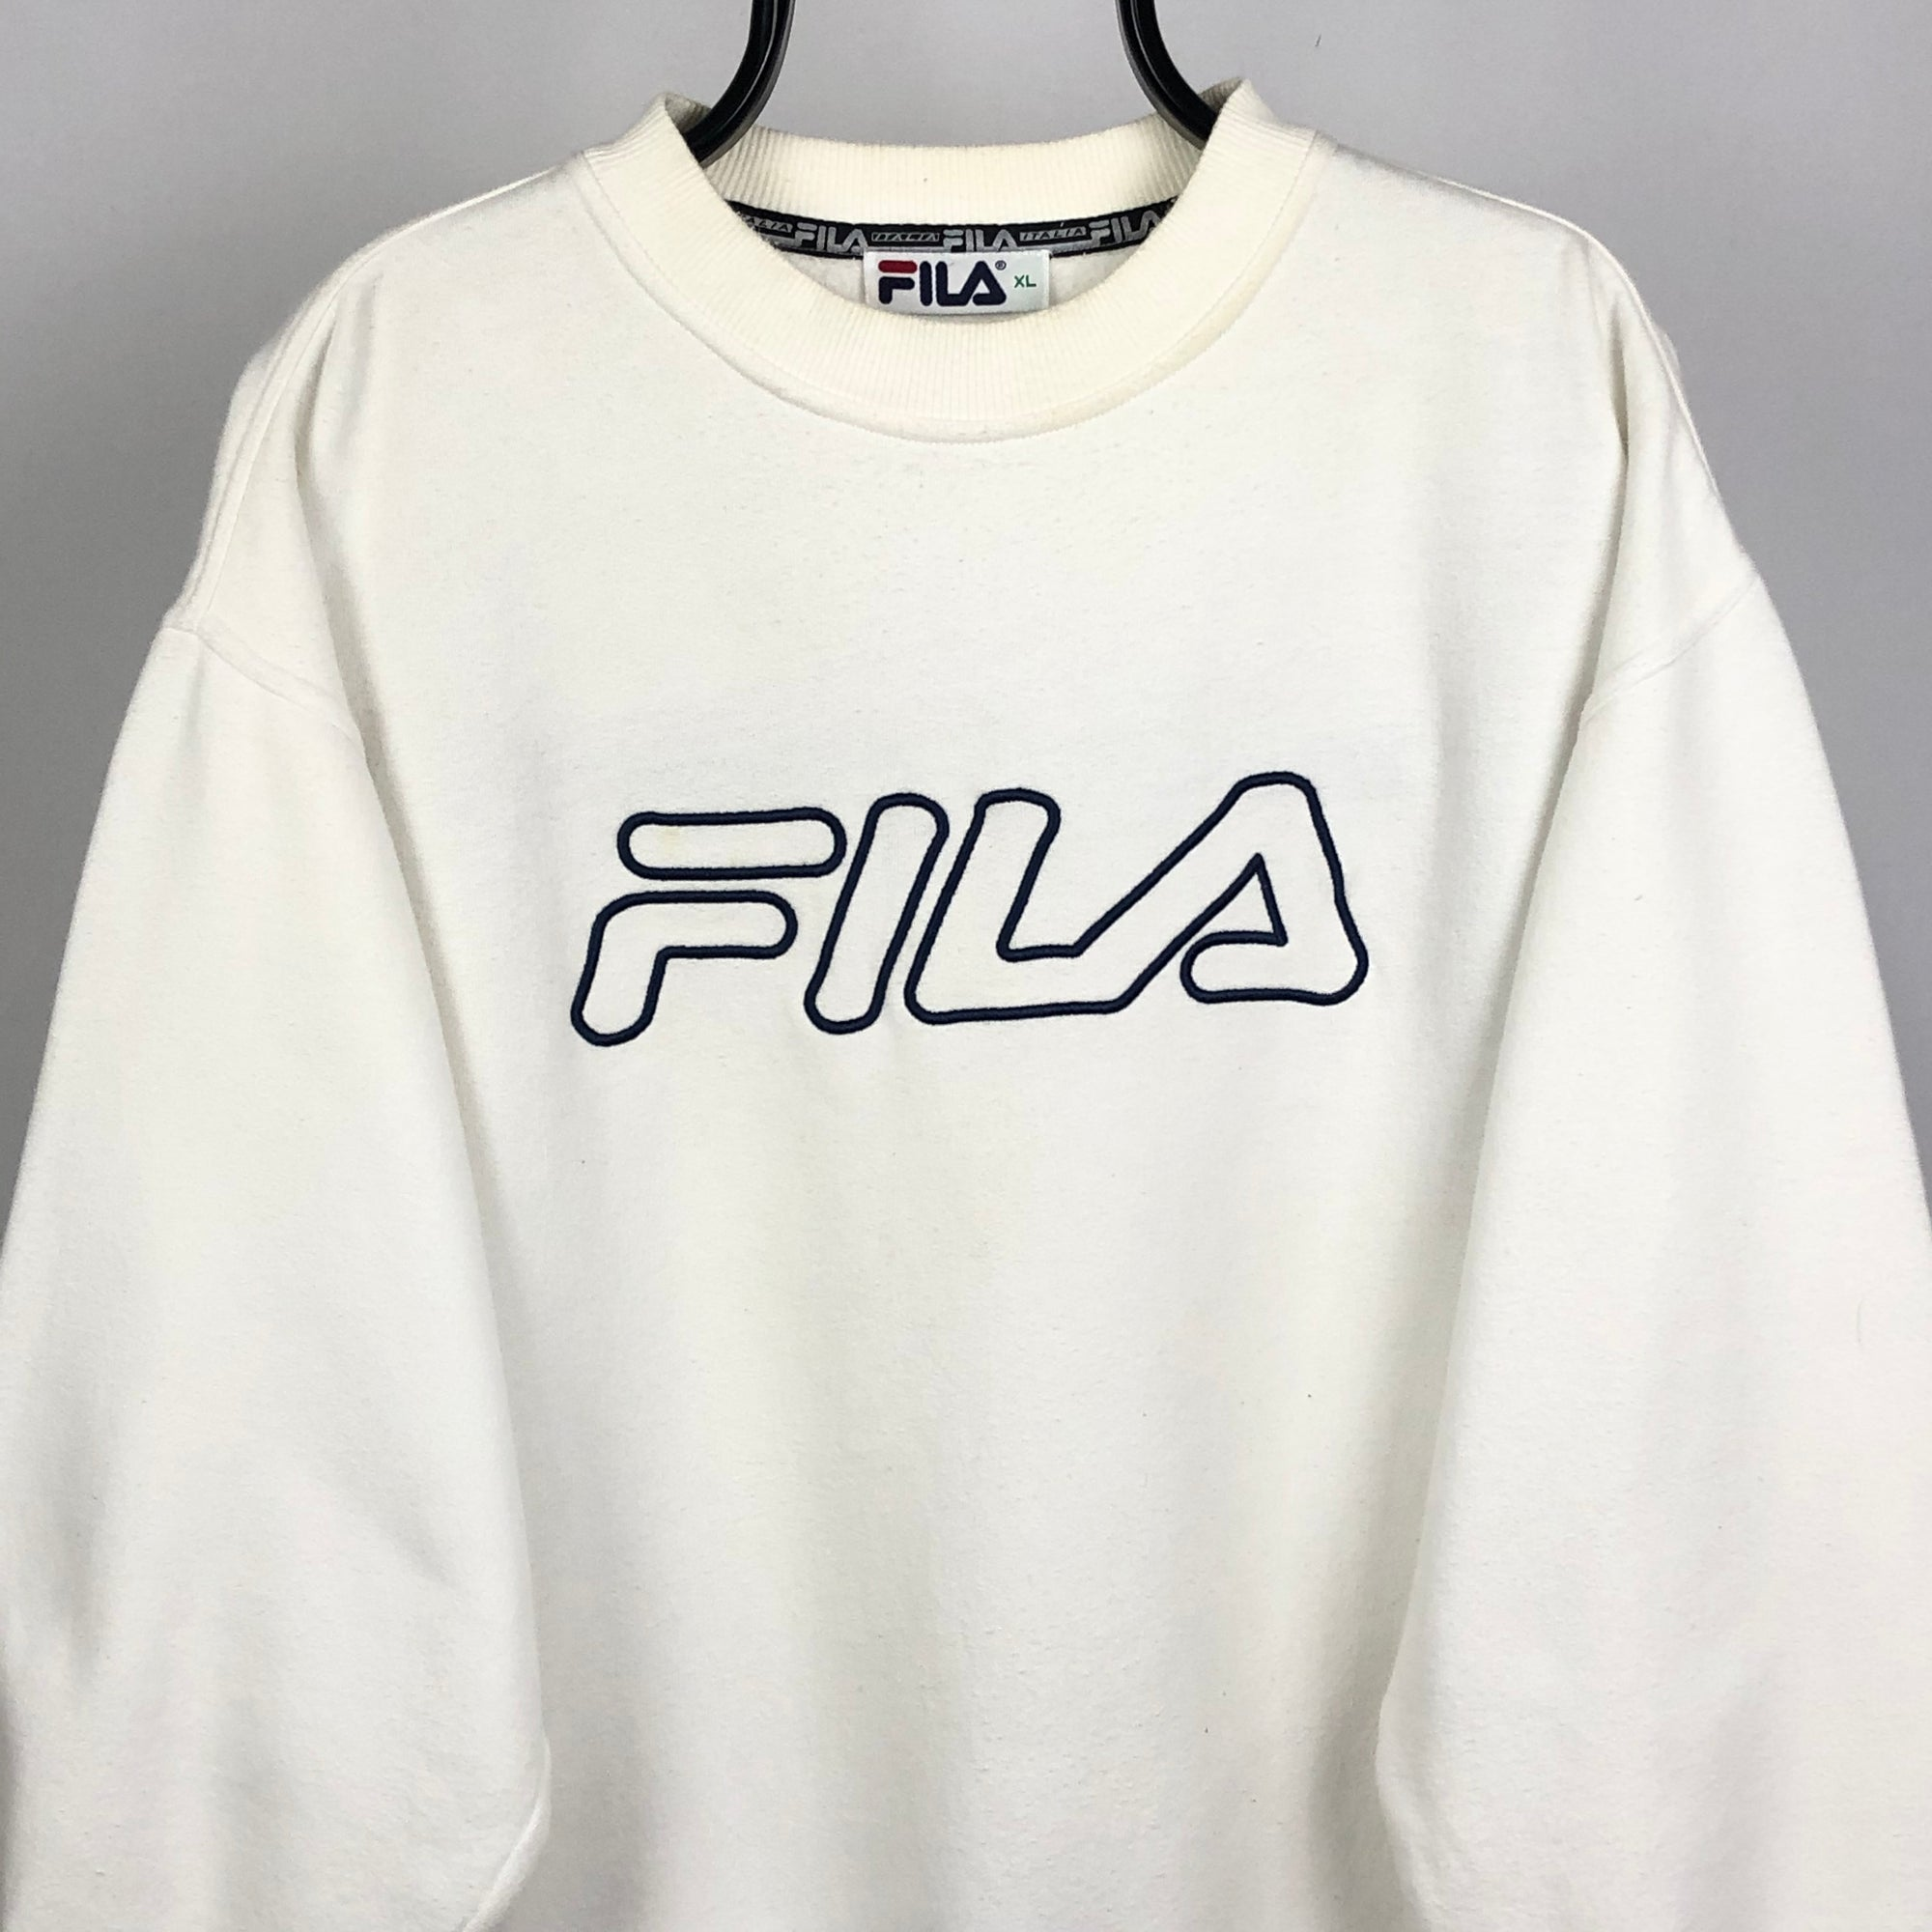 Vintage Fila Spellout Sweatshirt in White - Men's Large/Women's XL